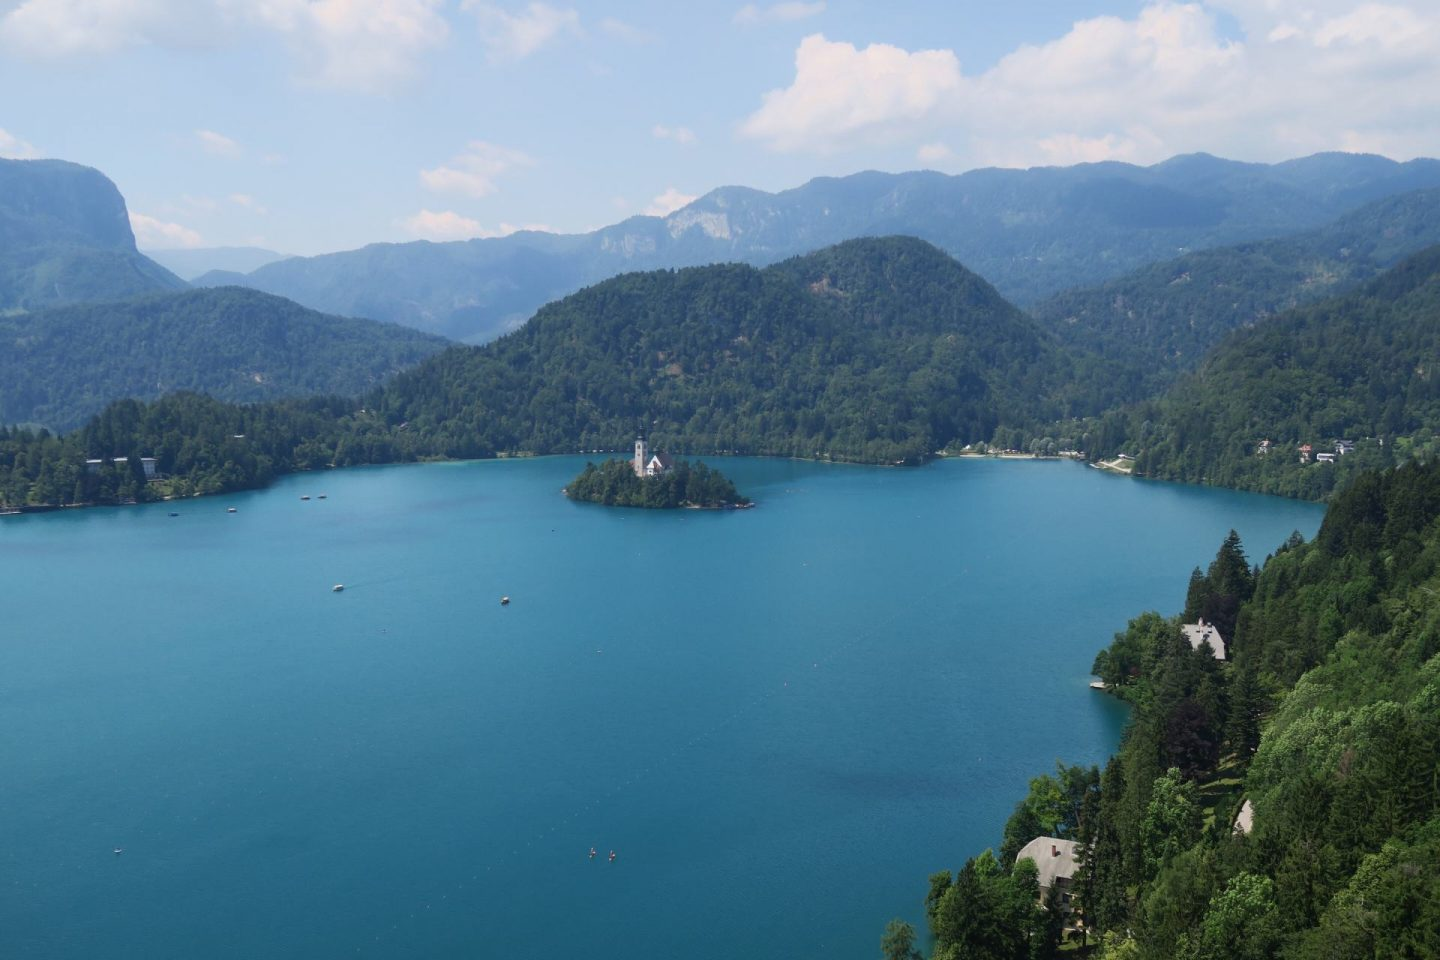 Lake Bled and the island